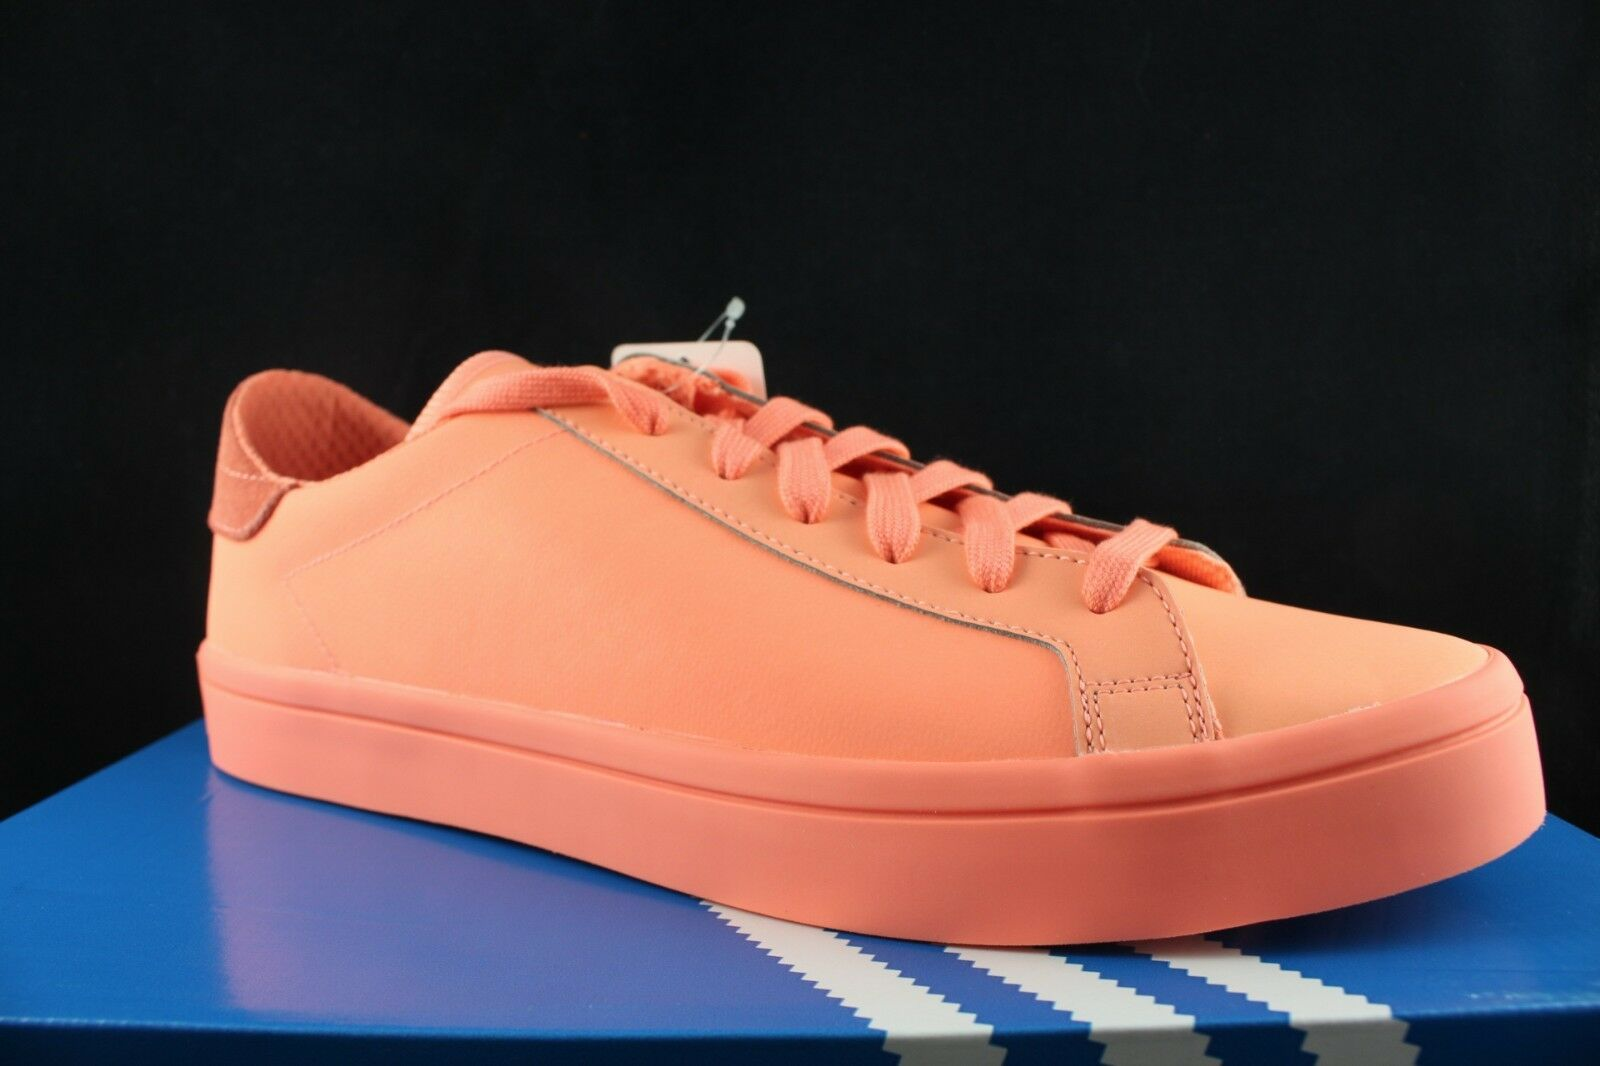 ADIDAS ORIGINALS COURTVANTAGE ADICOLOR SUN GLOW S80257 SZ 10